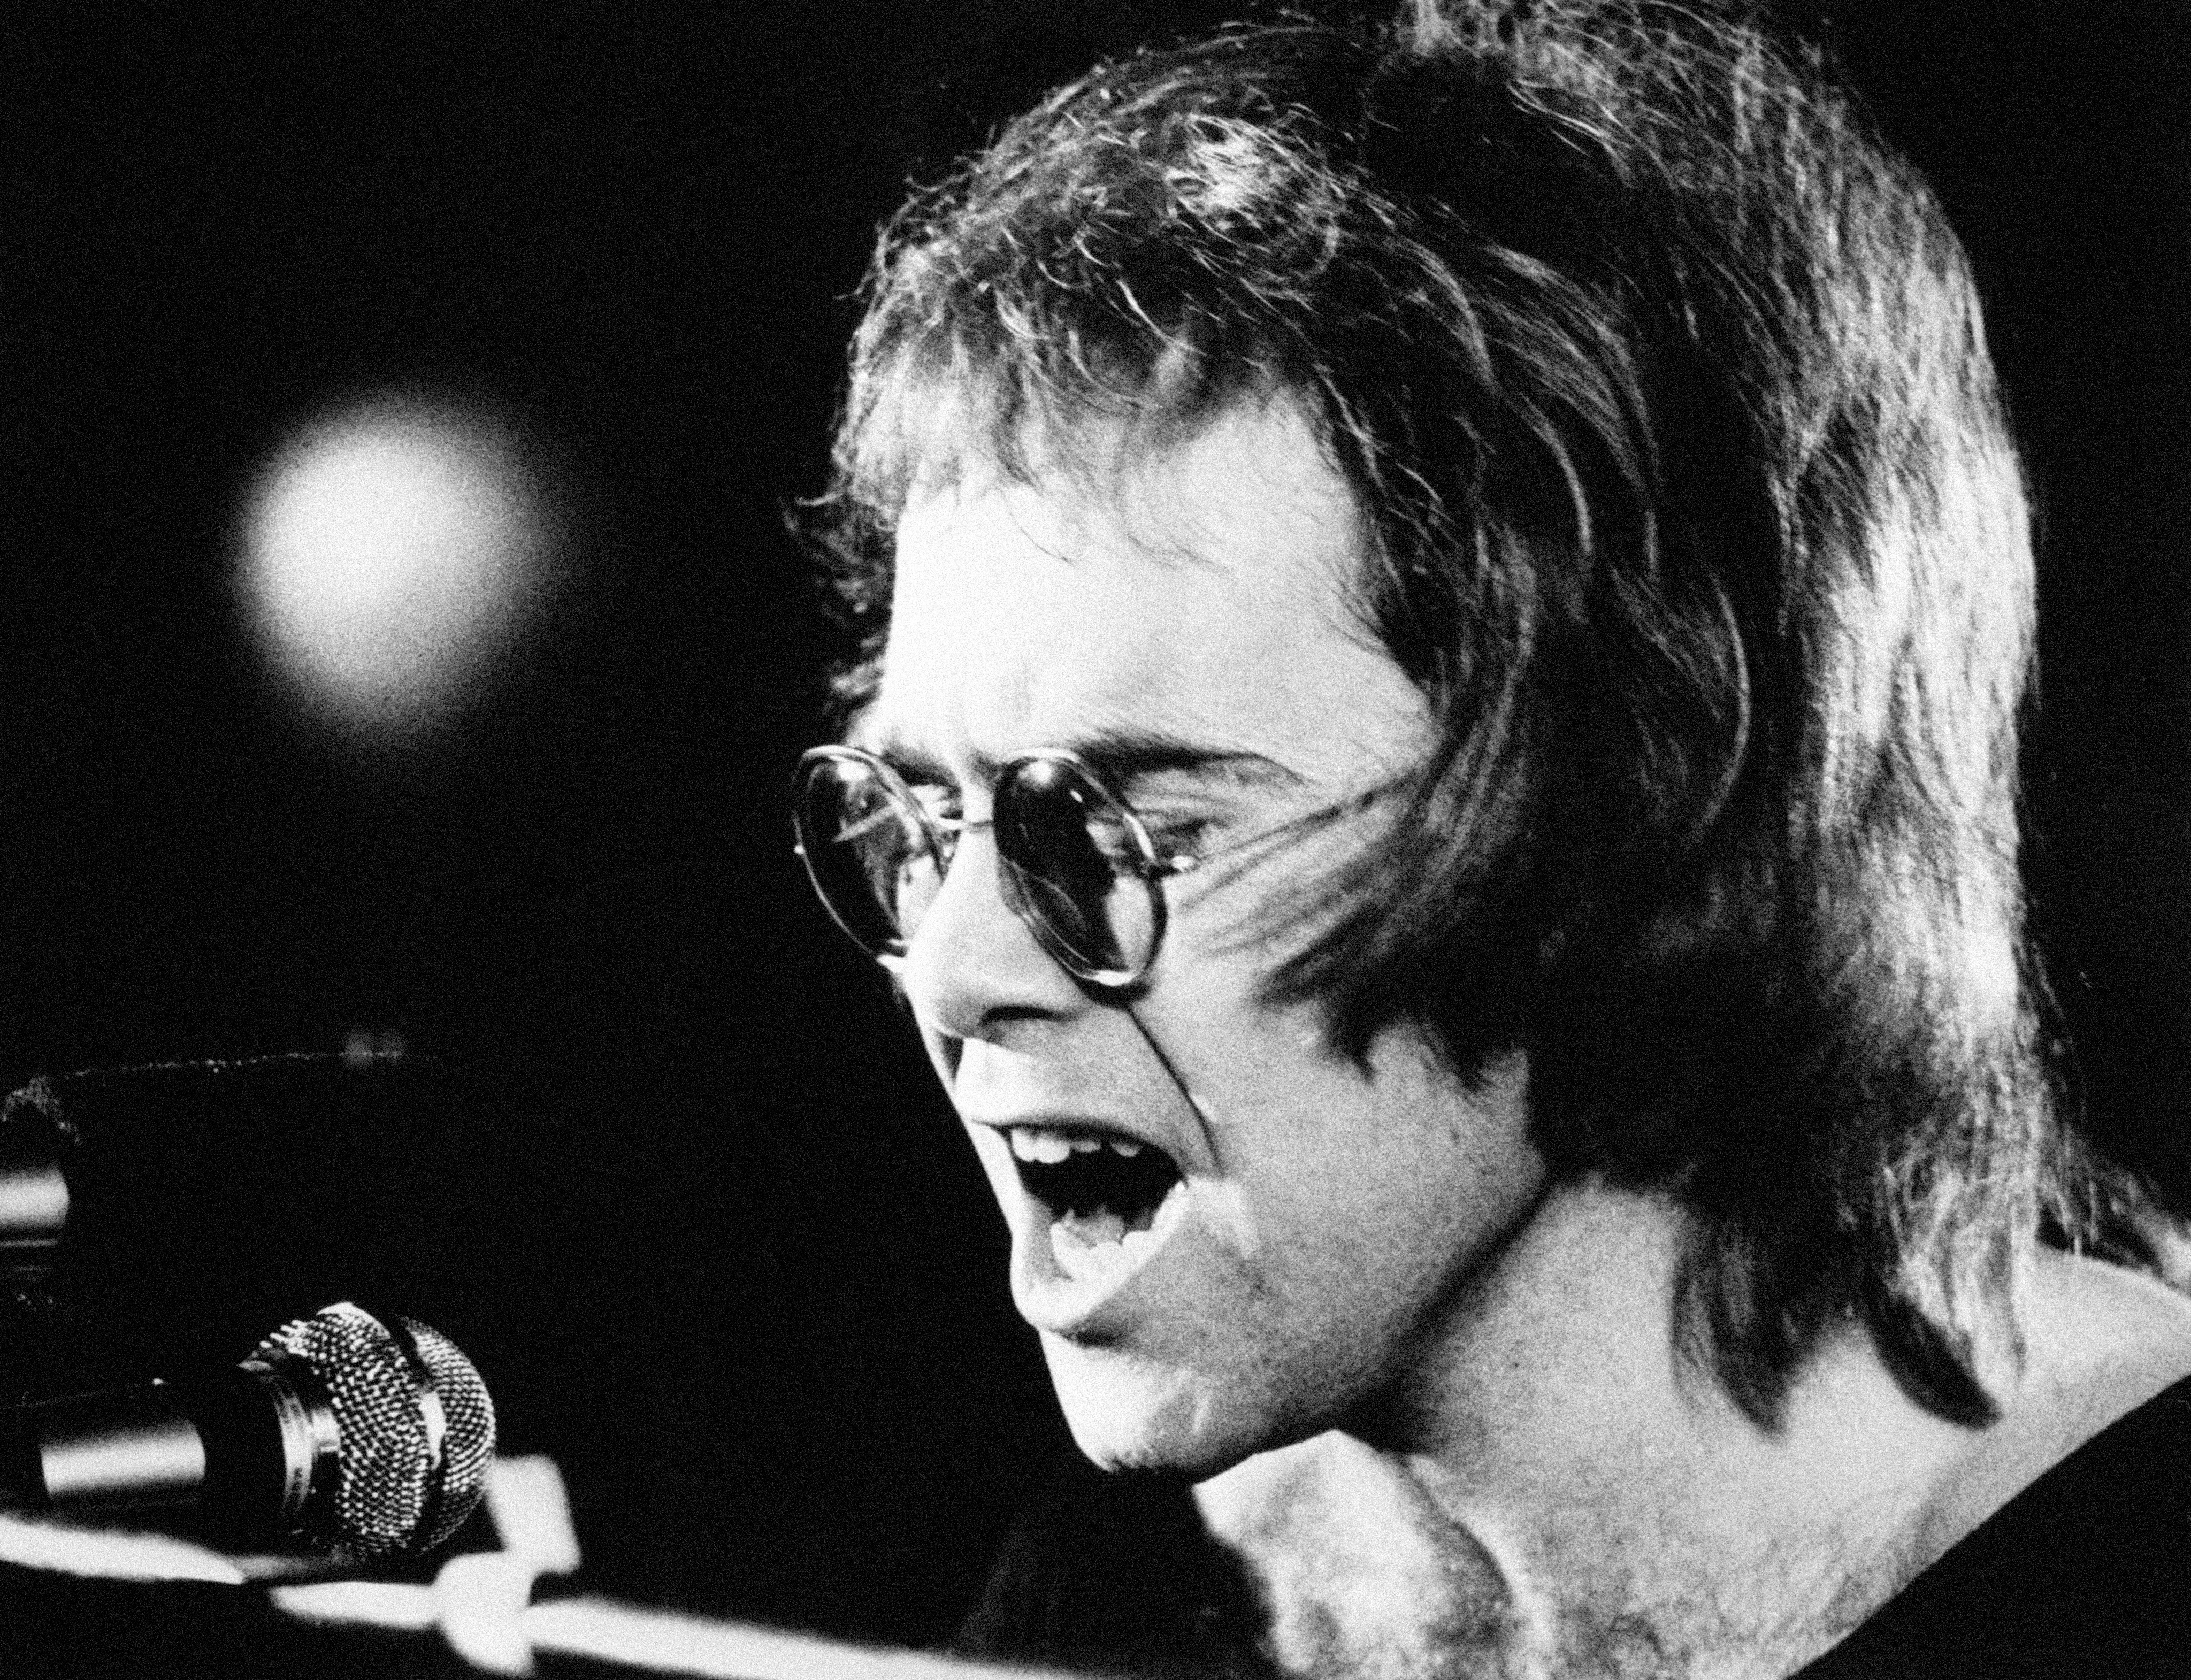 Musician Elton John sings in to the microphone on stage during a gig.